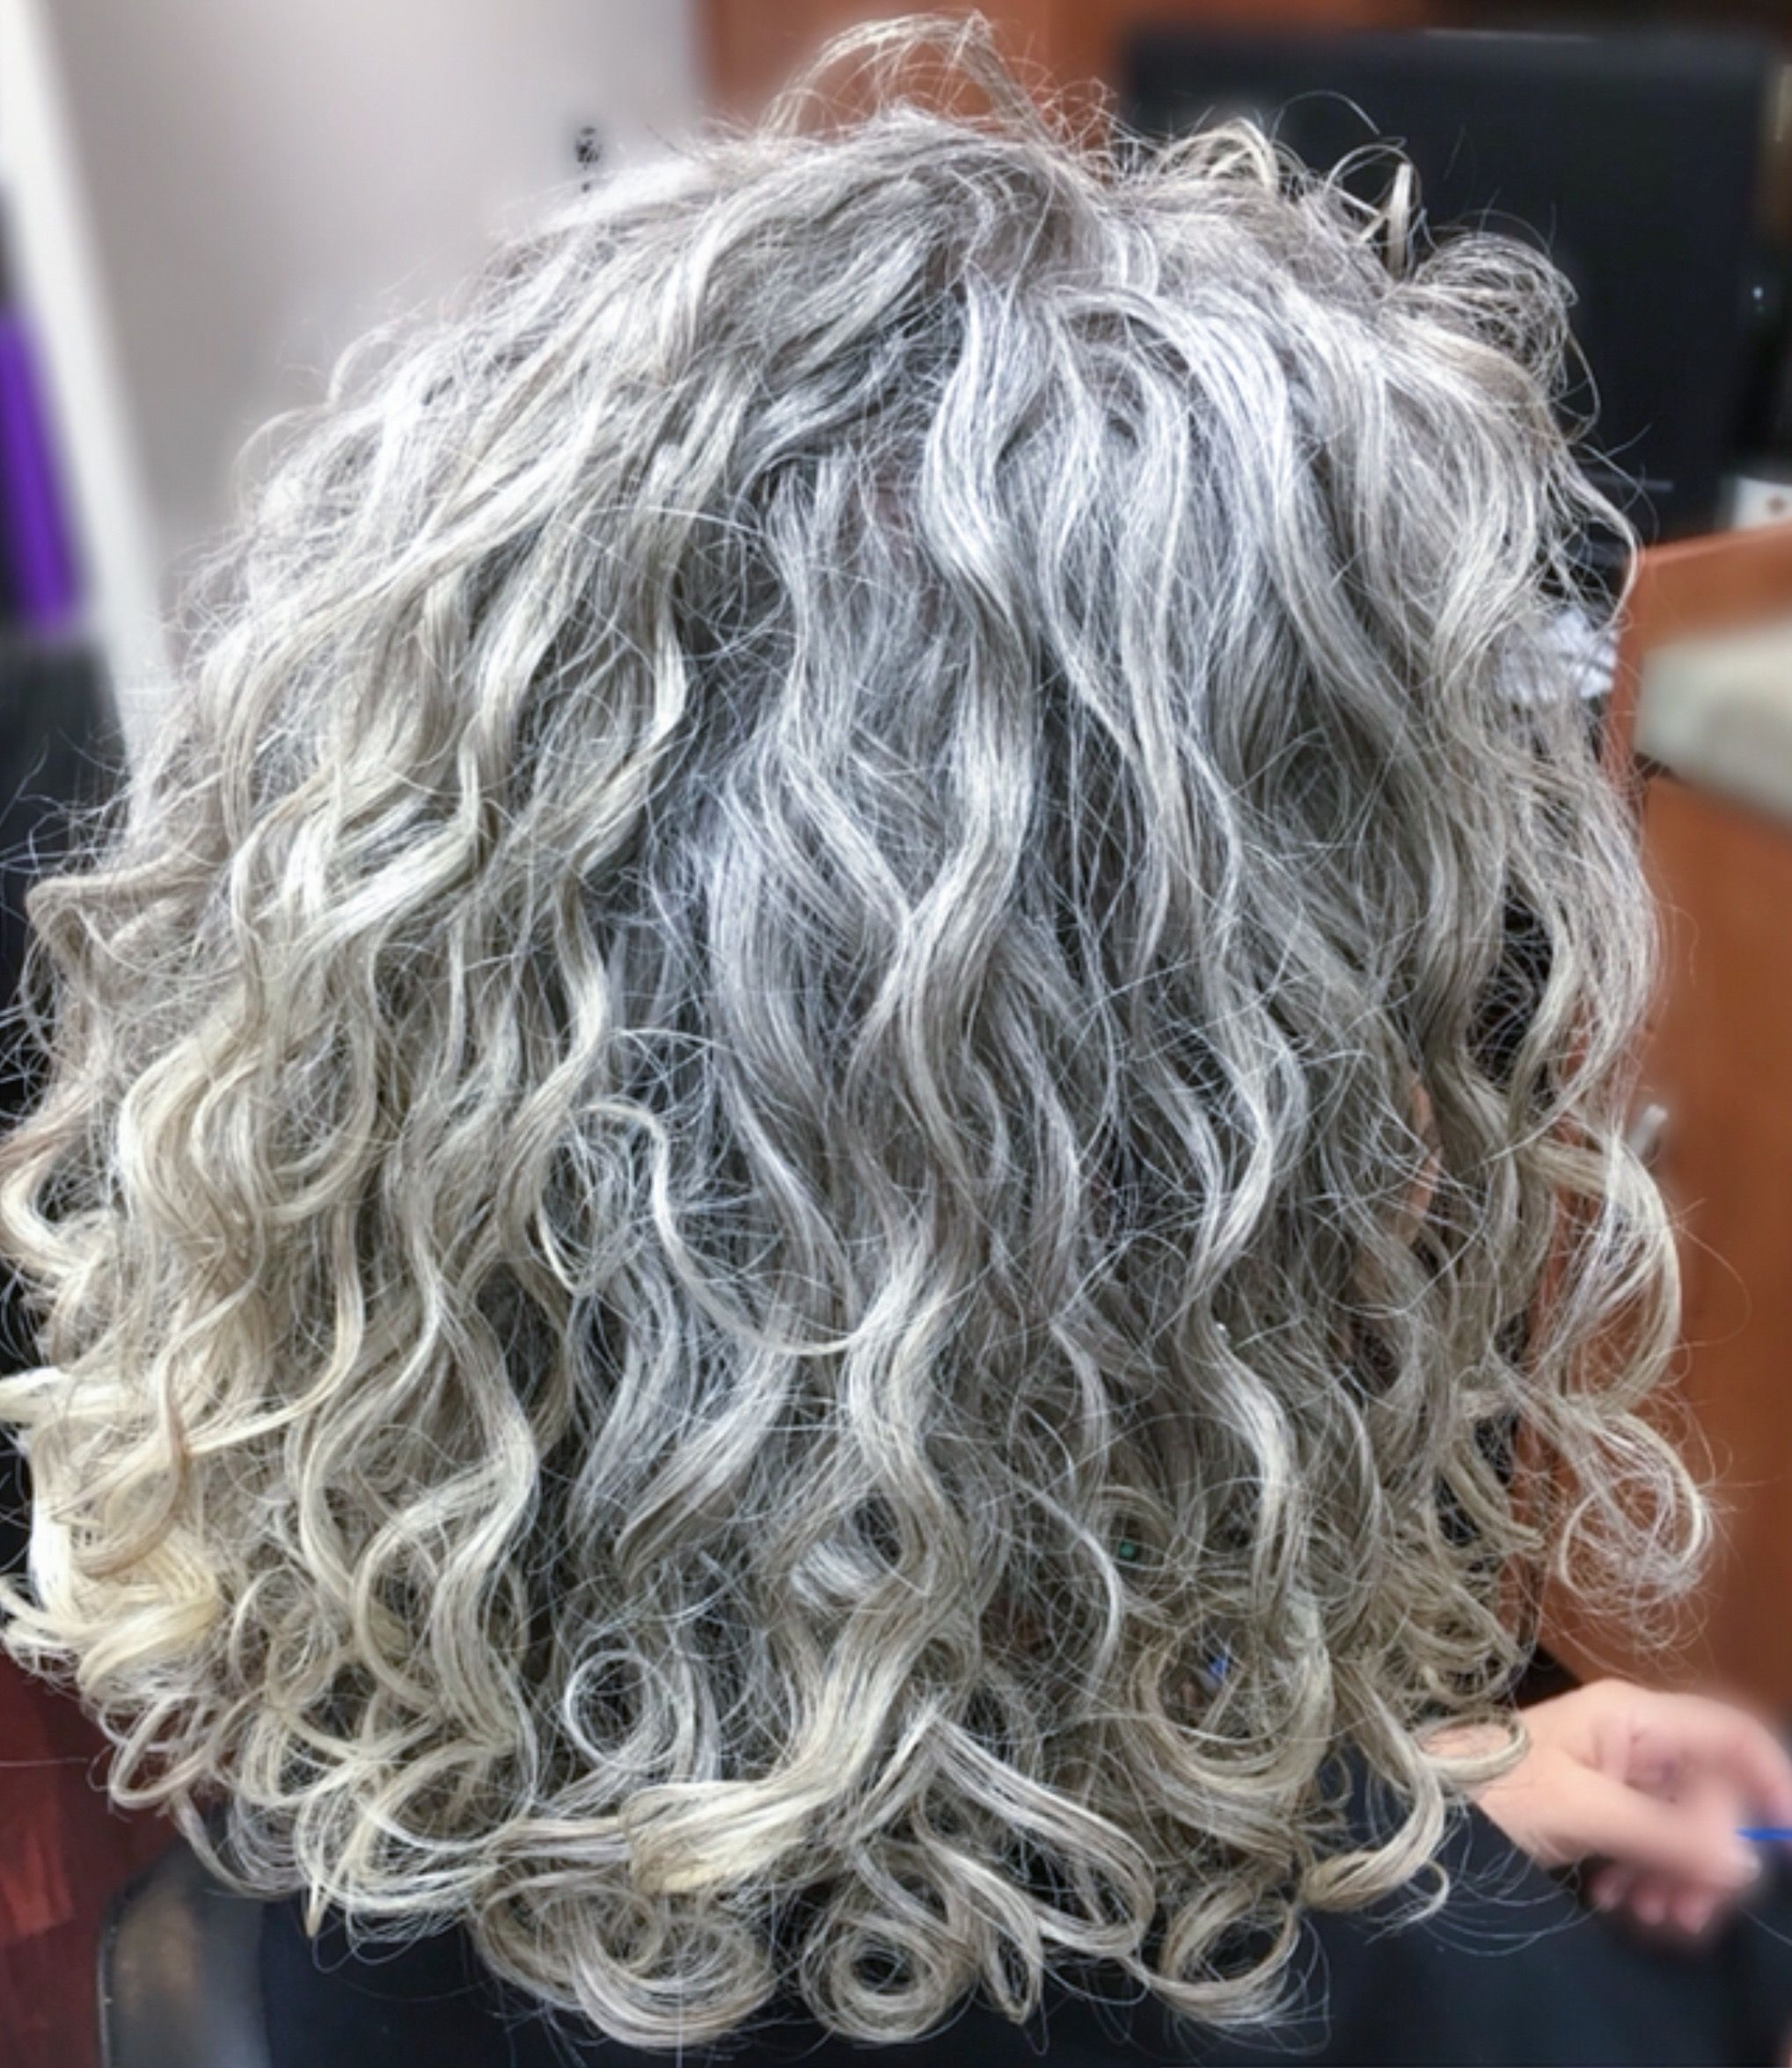 Thick wavy curly natural grey hair I love the colour and texture